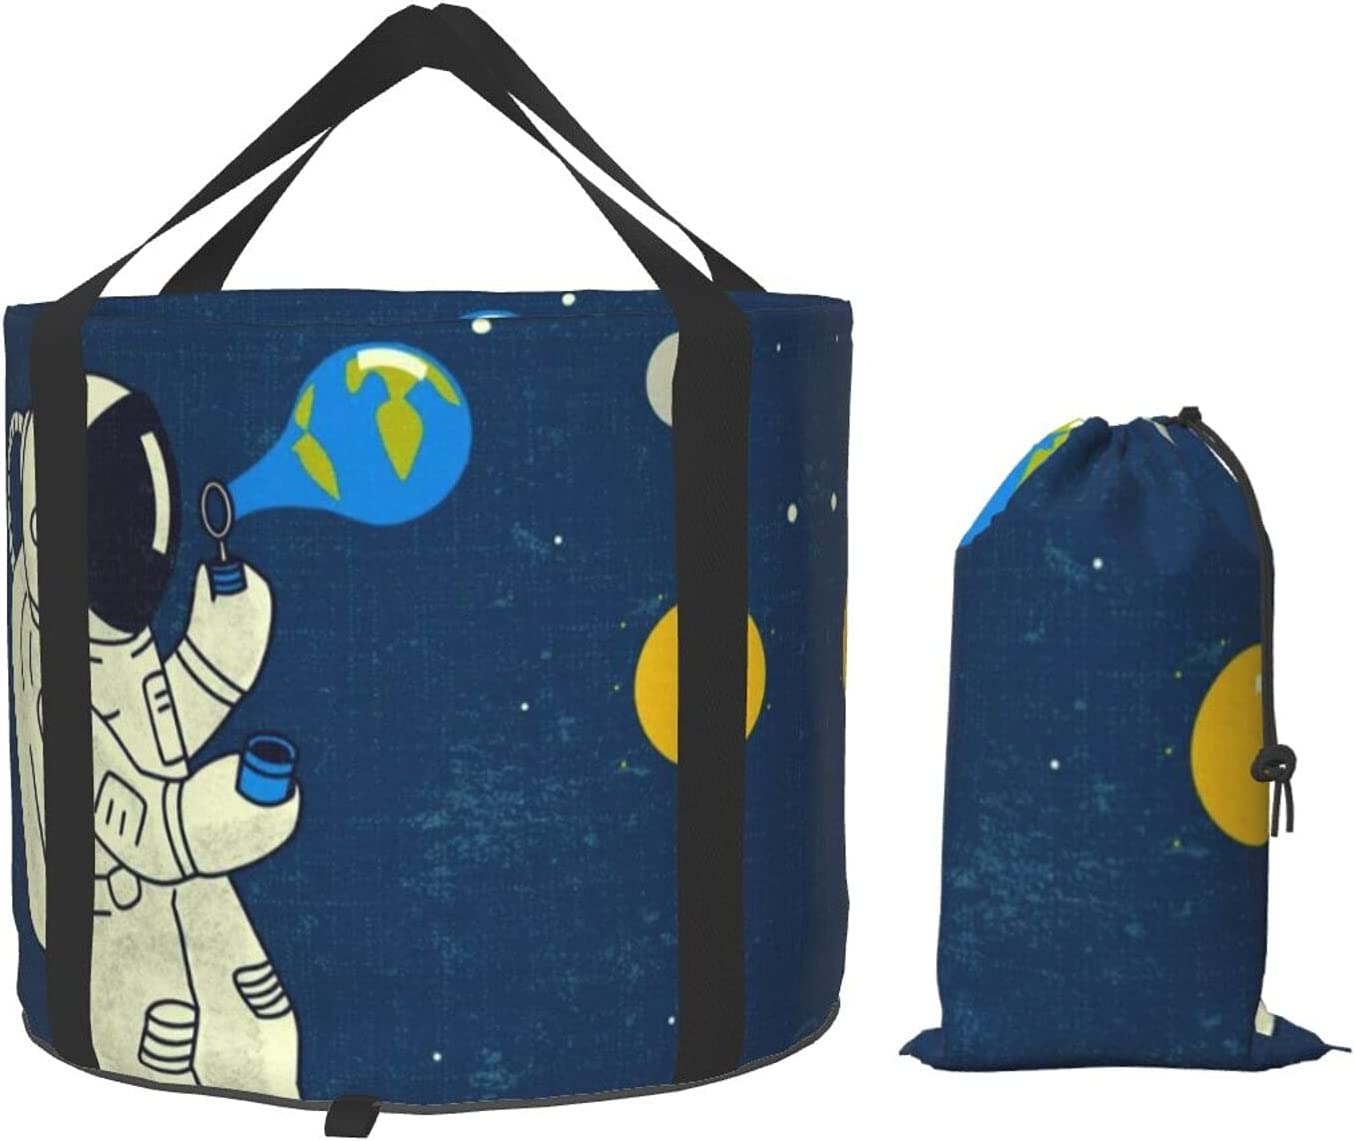 VVEGACE Galaxy Spaceman Regular discount Astronaut Multifunct New Shipping Free Shipping Bucket Collapsible